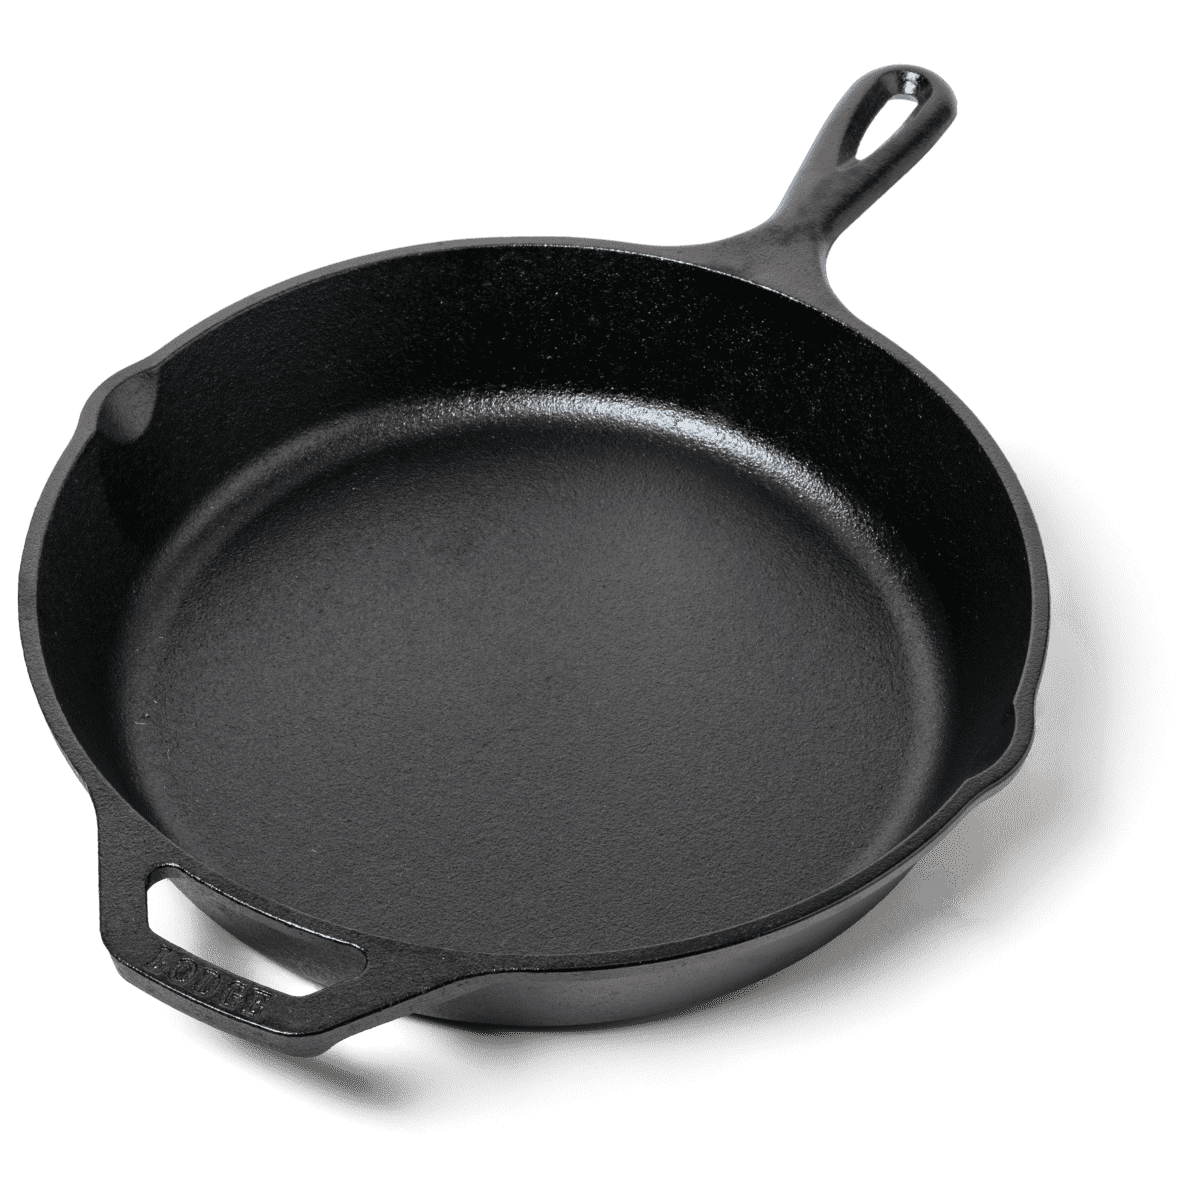 The Best The Best 10 Inch Cast Iron Skillet Cook S Illustrated